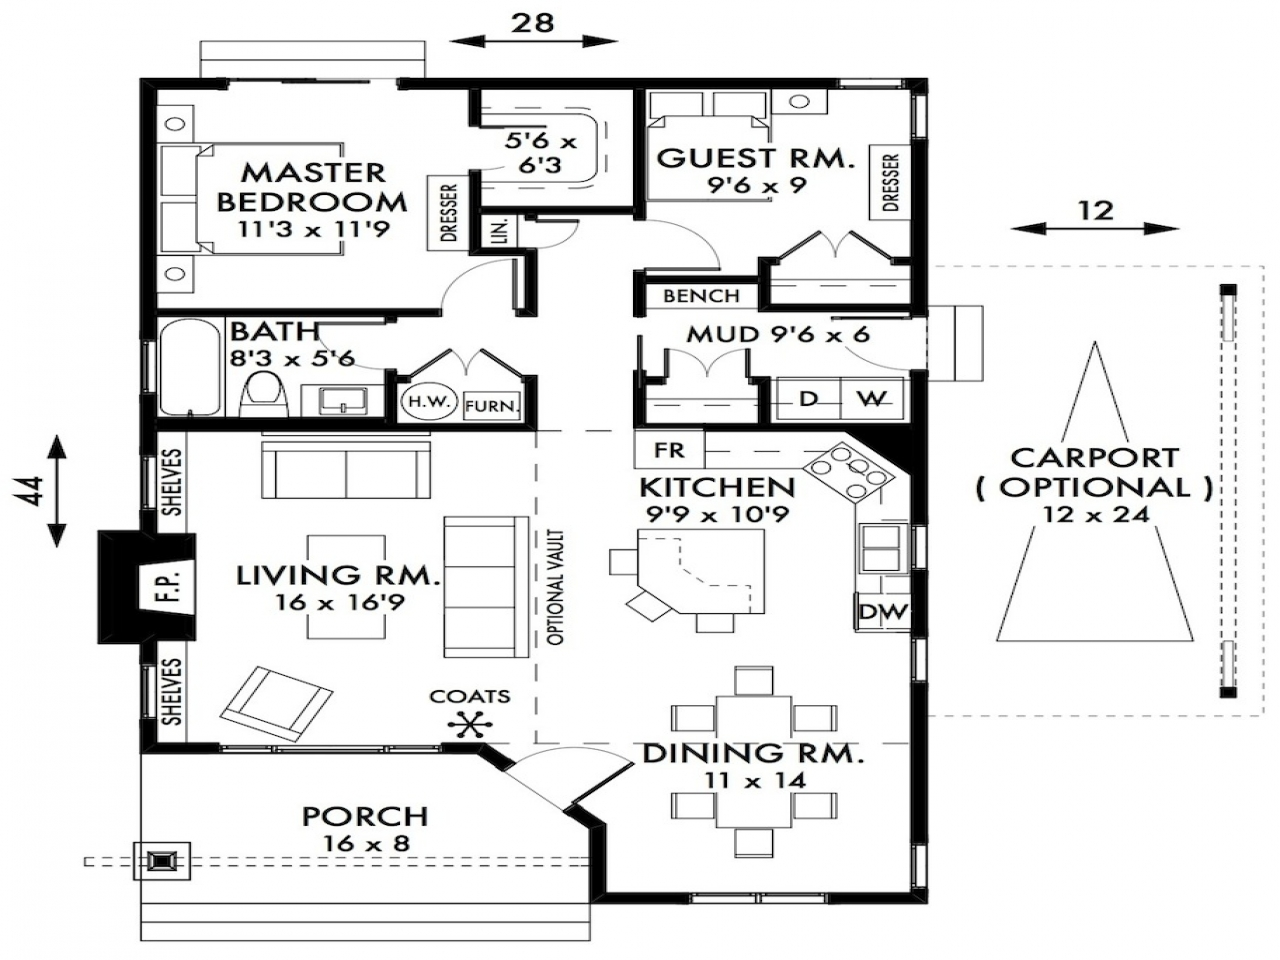 2 bedroom plans small cottage 2 bedroom cottage house for Small 2 bedroom house plans